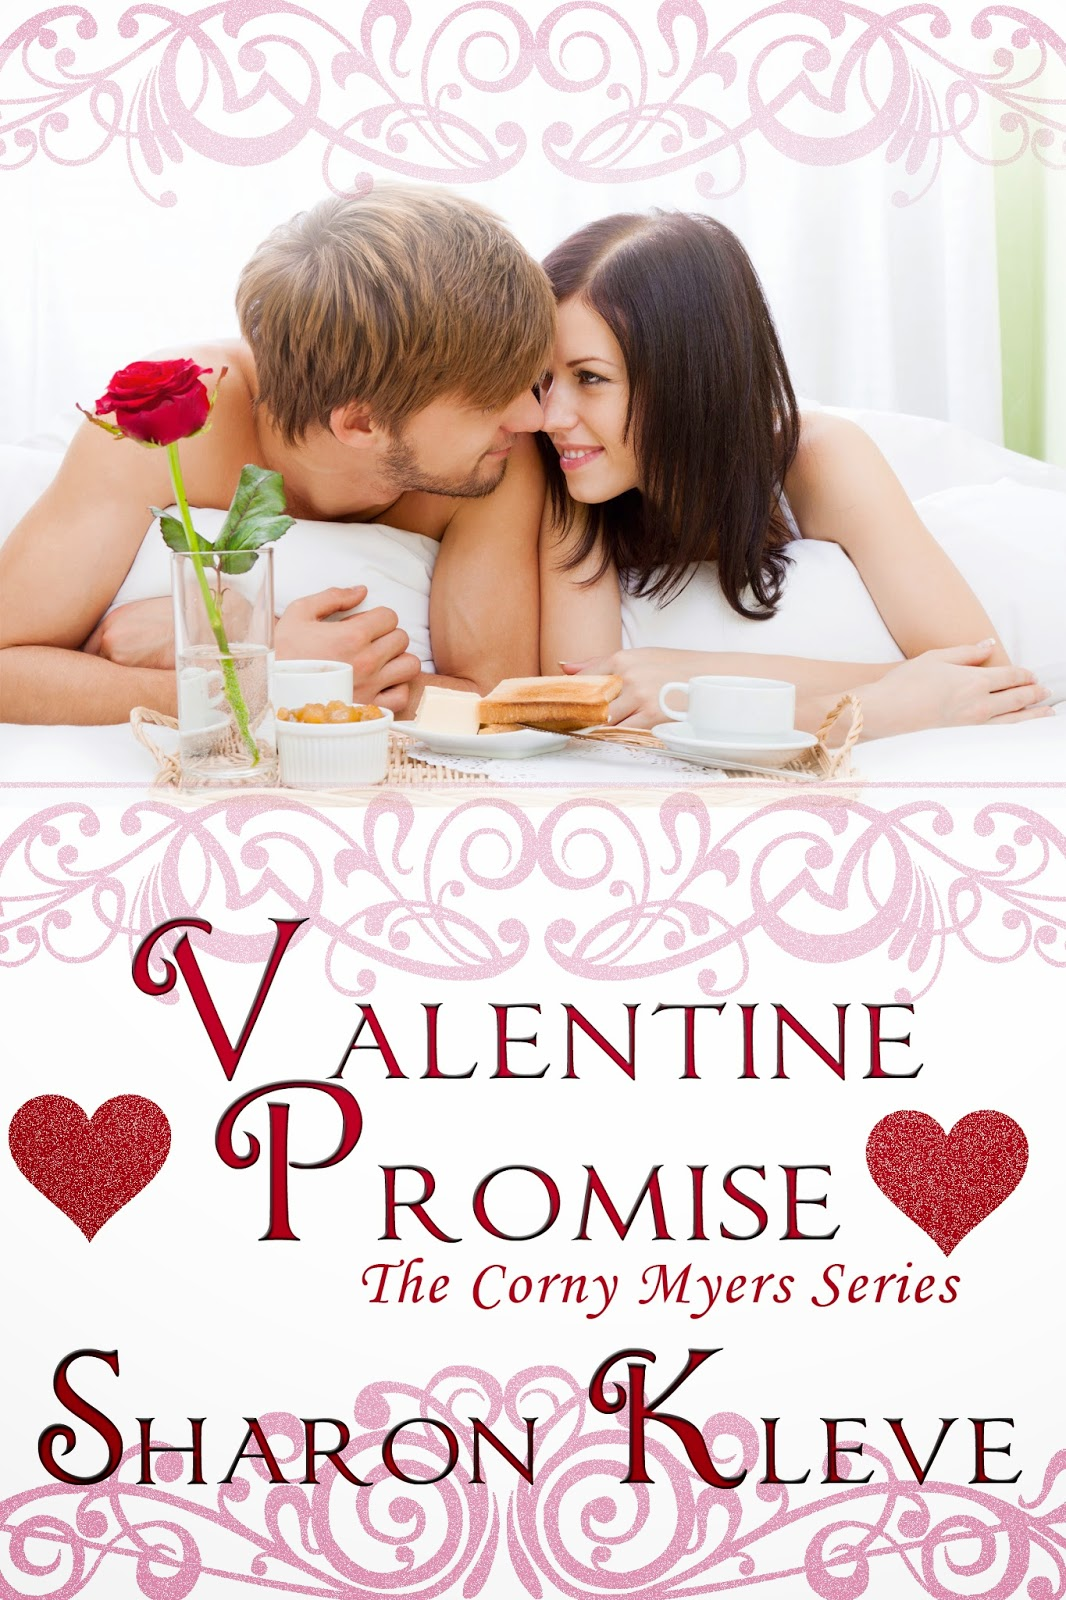 http://www.amazon.com/Valentine-Promise-Corny-Myers-Book-ebook/dp/B00SU6I1KW/ref=sr_1_3?ie=UTF8&qid=1427655148&sr=8-3&keywords=sharon+kleve